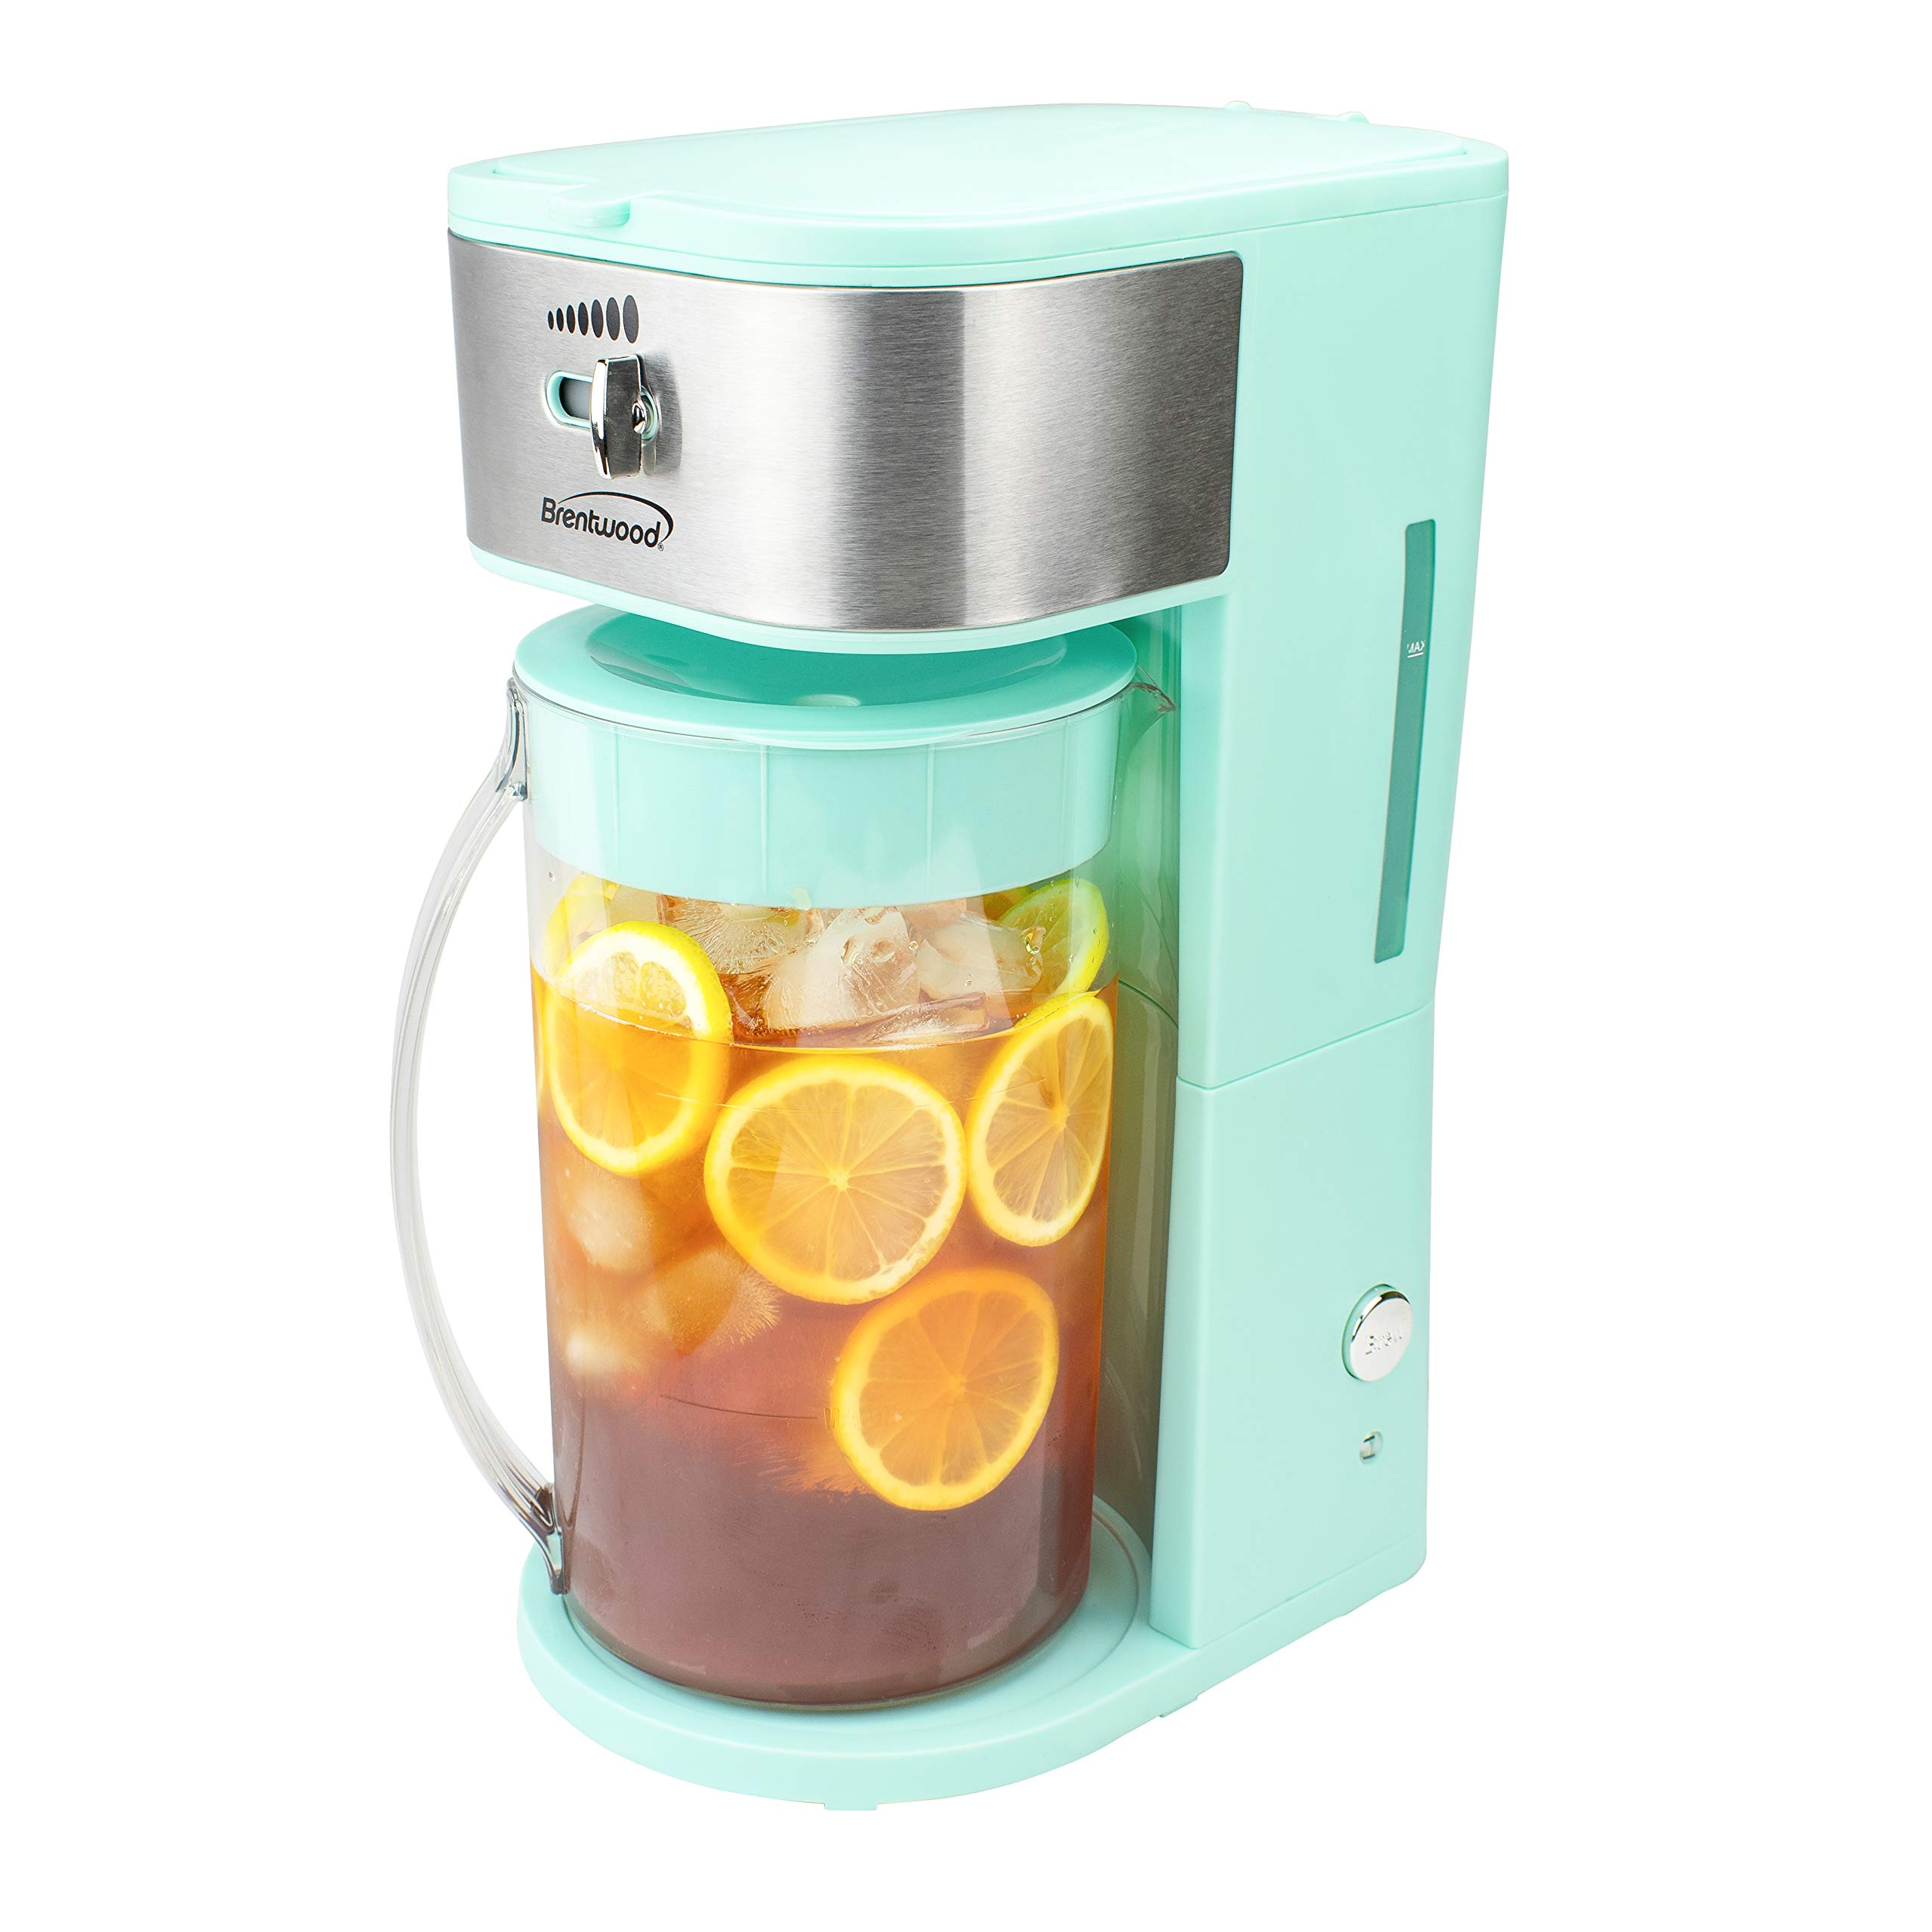 Brentwood Iced Tea and Coffee Maker with 64oz Pitcher (BLUE)